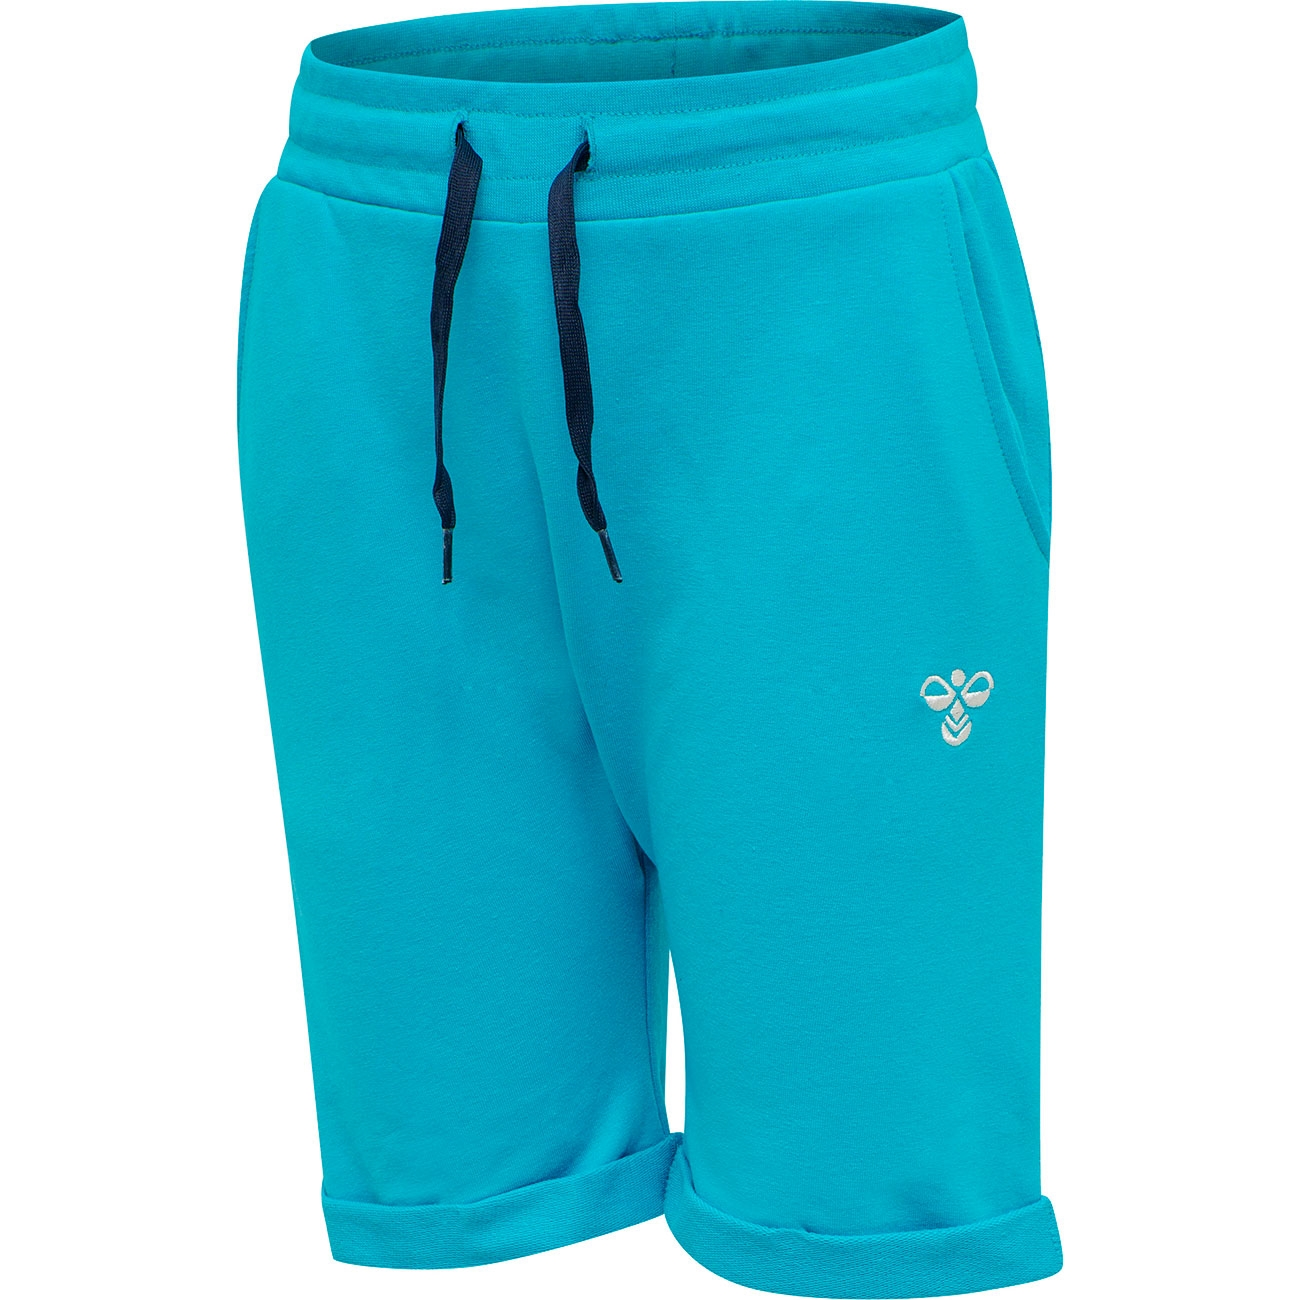 hummel-shorts-blue-blaa-pocket-lomme